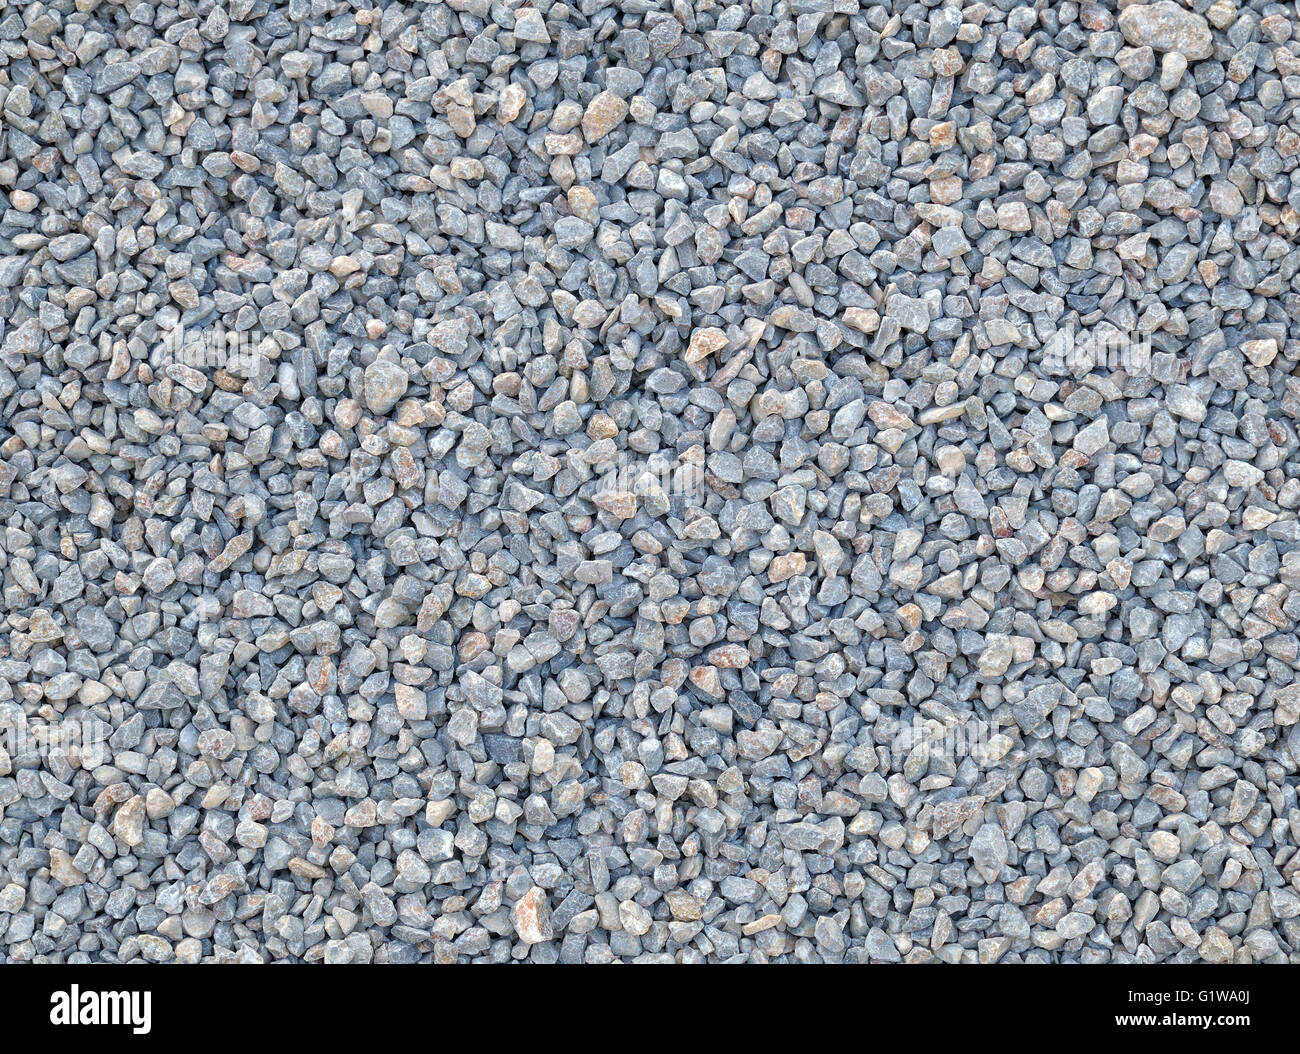 Smooth shaped white stones surface texture background stock photo - Stock Photo Crushed Stone Texture And Background